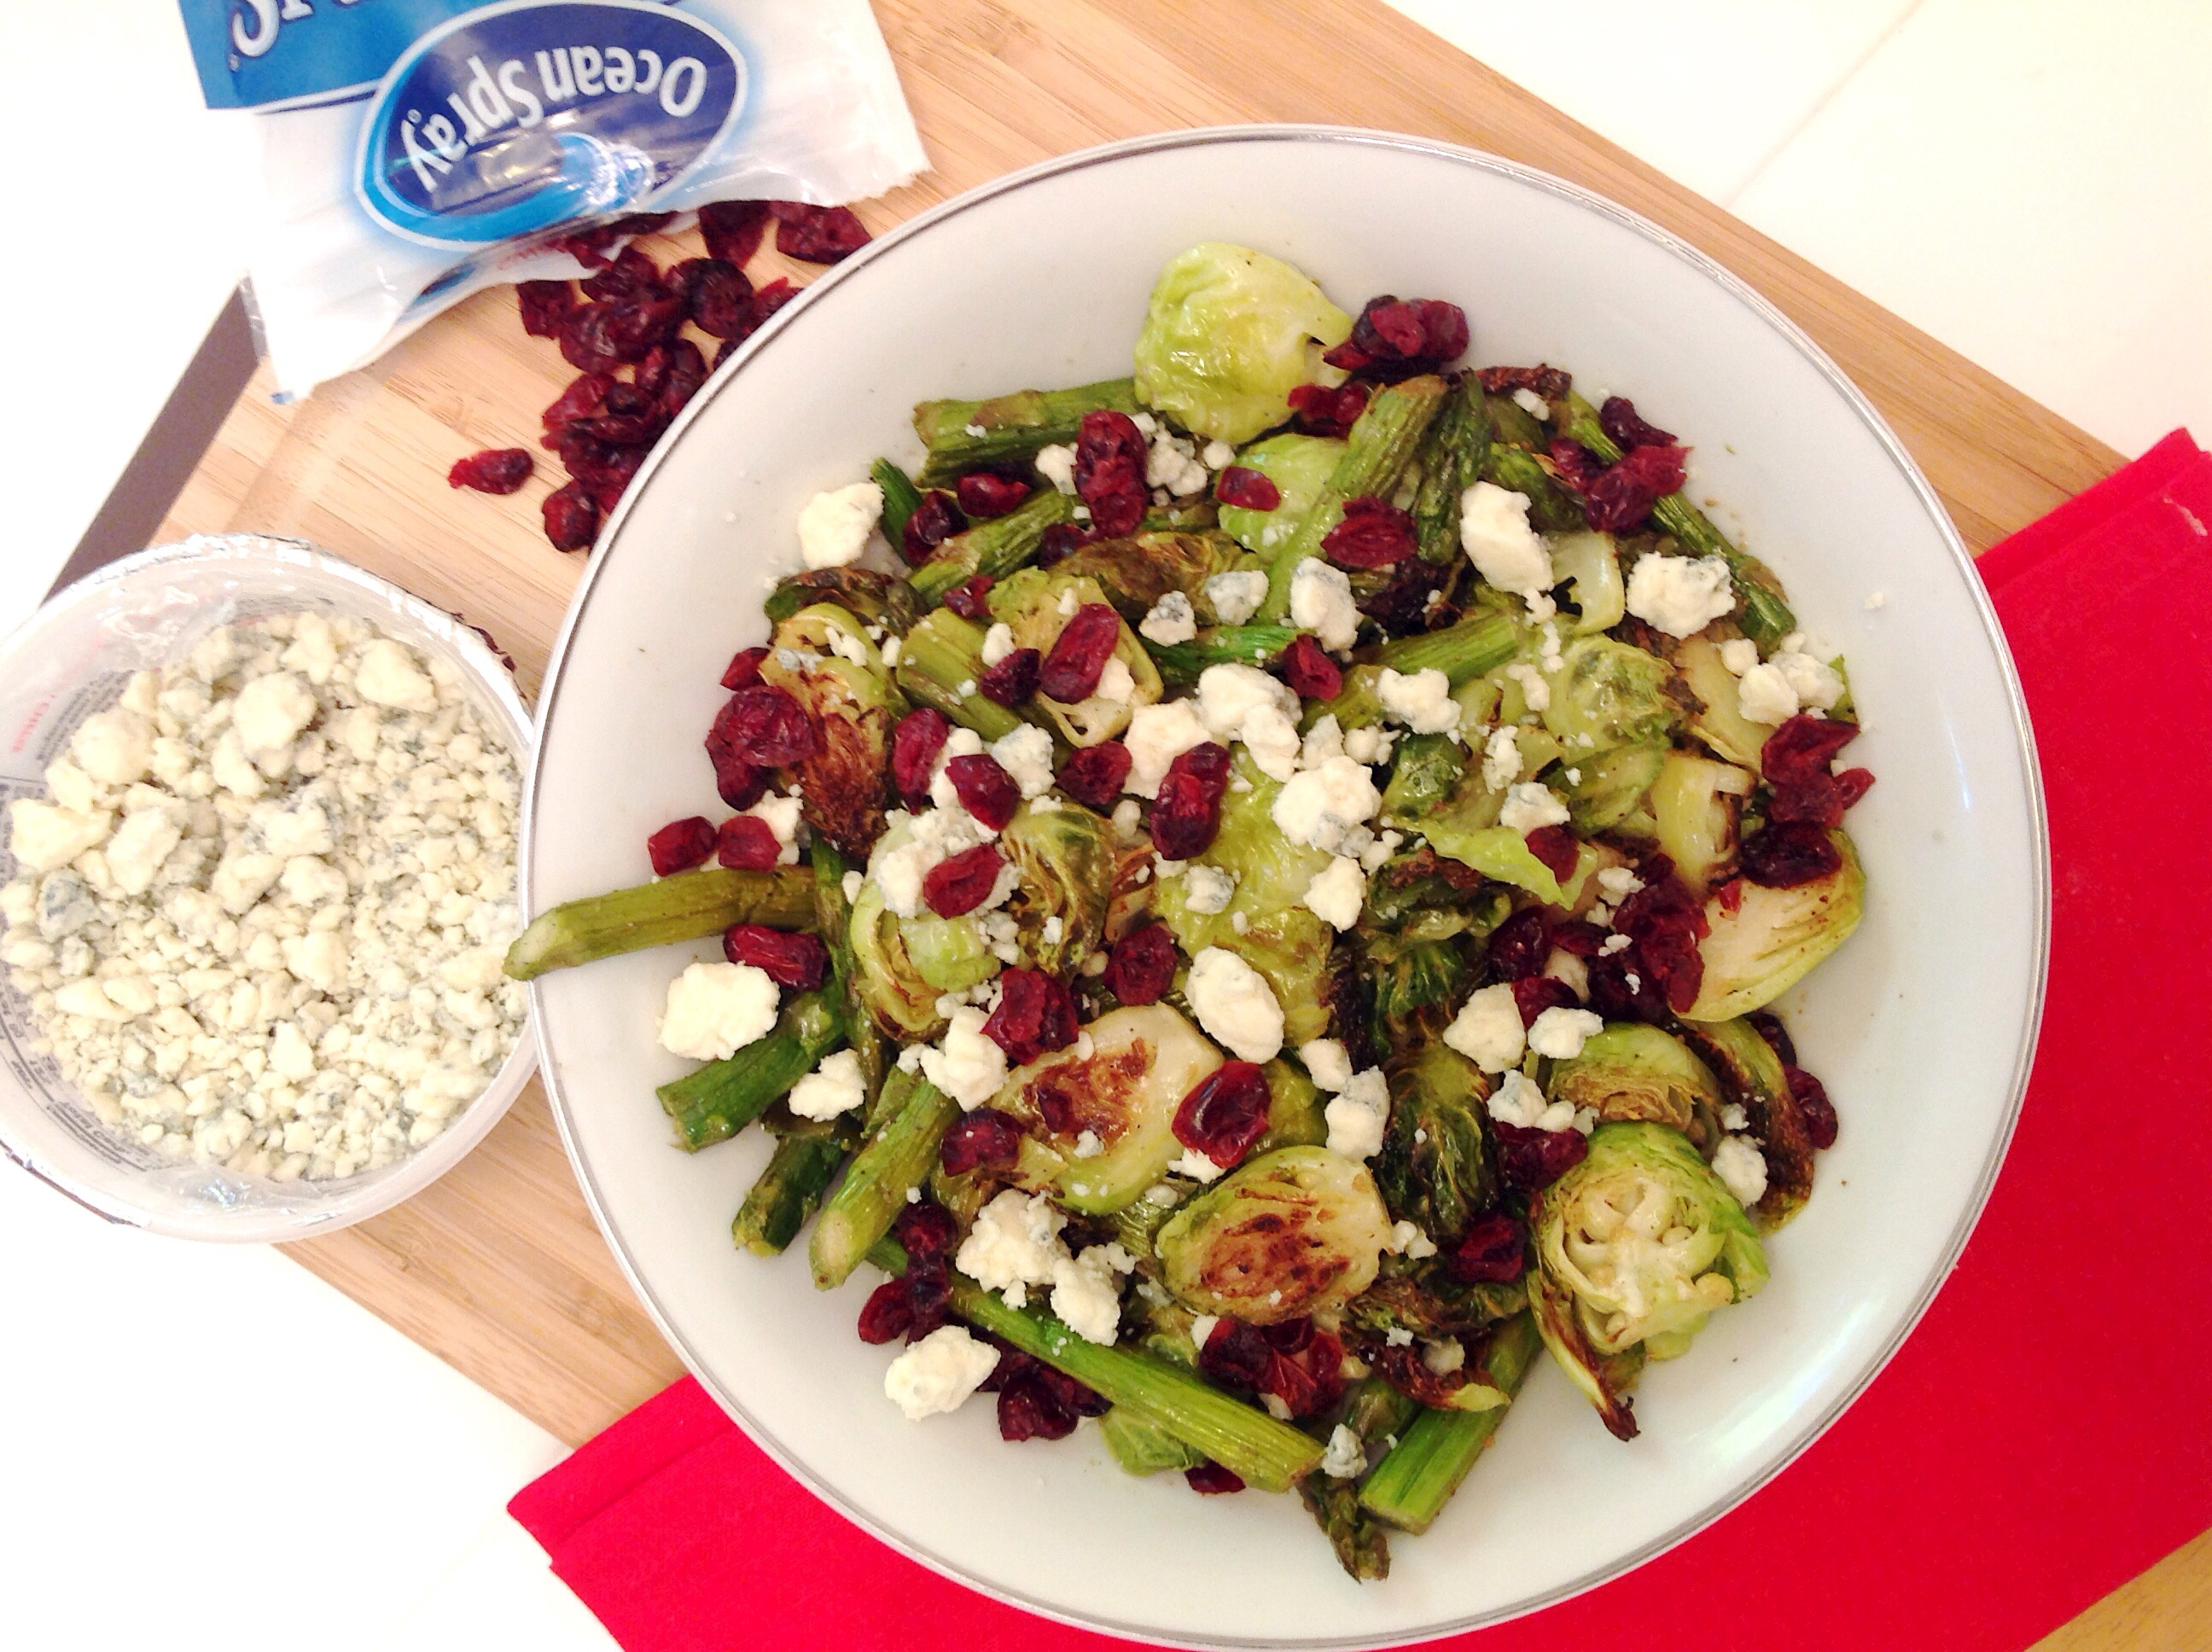 Roasted brussel sprout & aspargus salad with blue cheese & cranberries